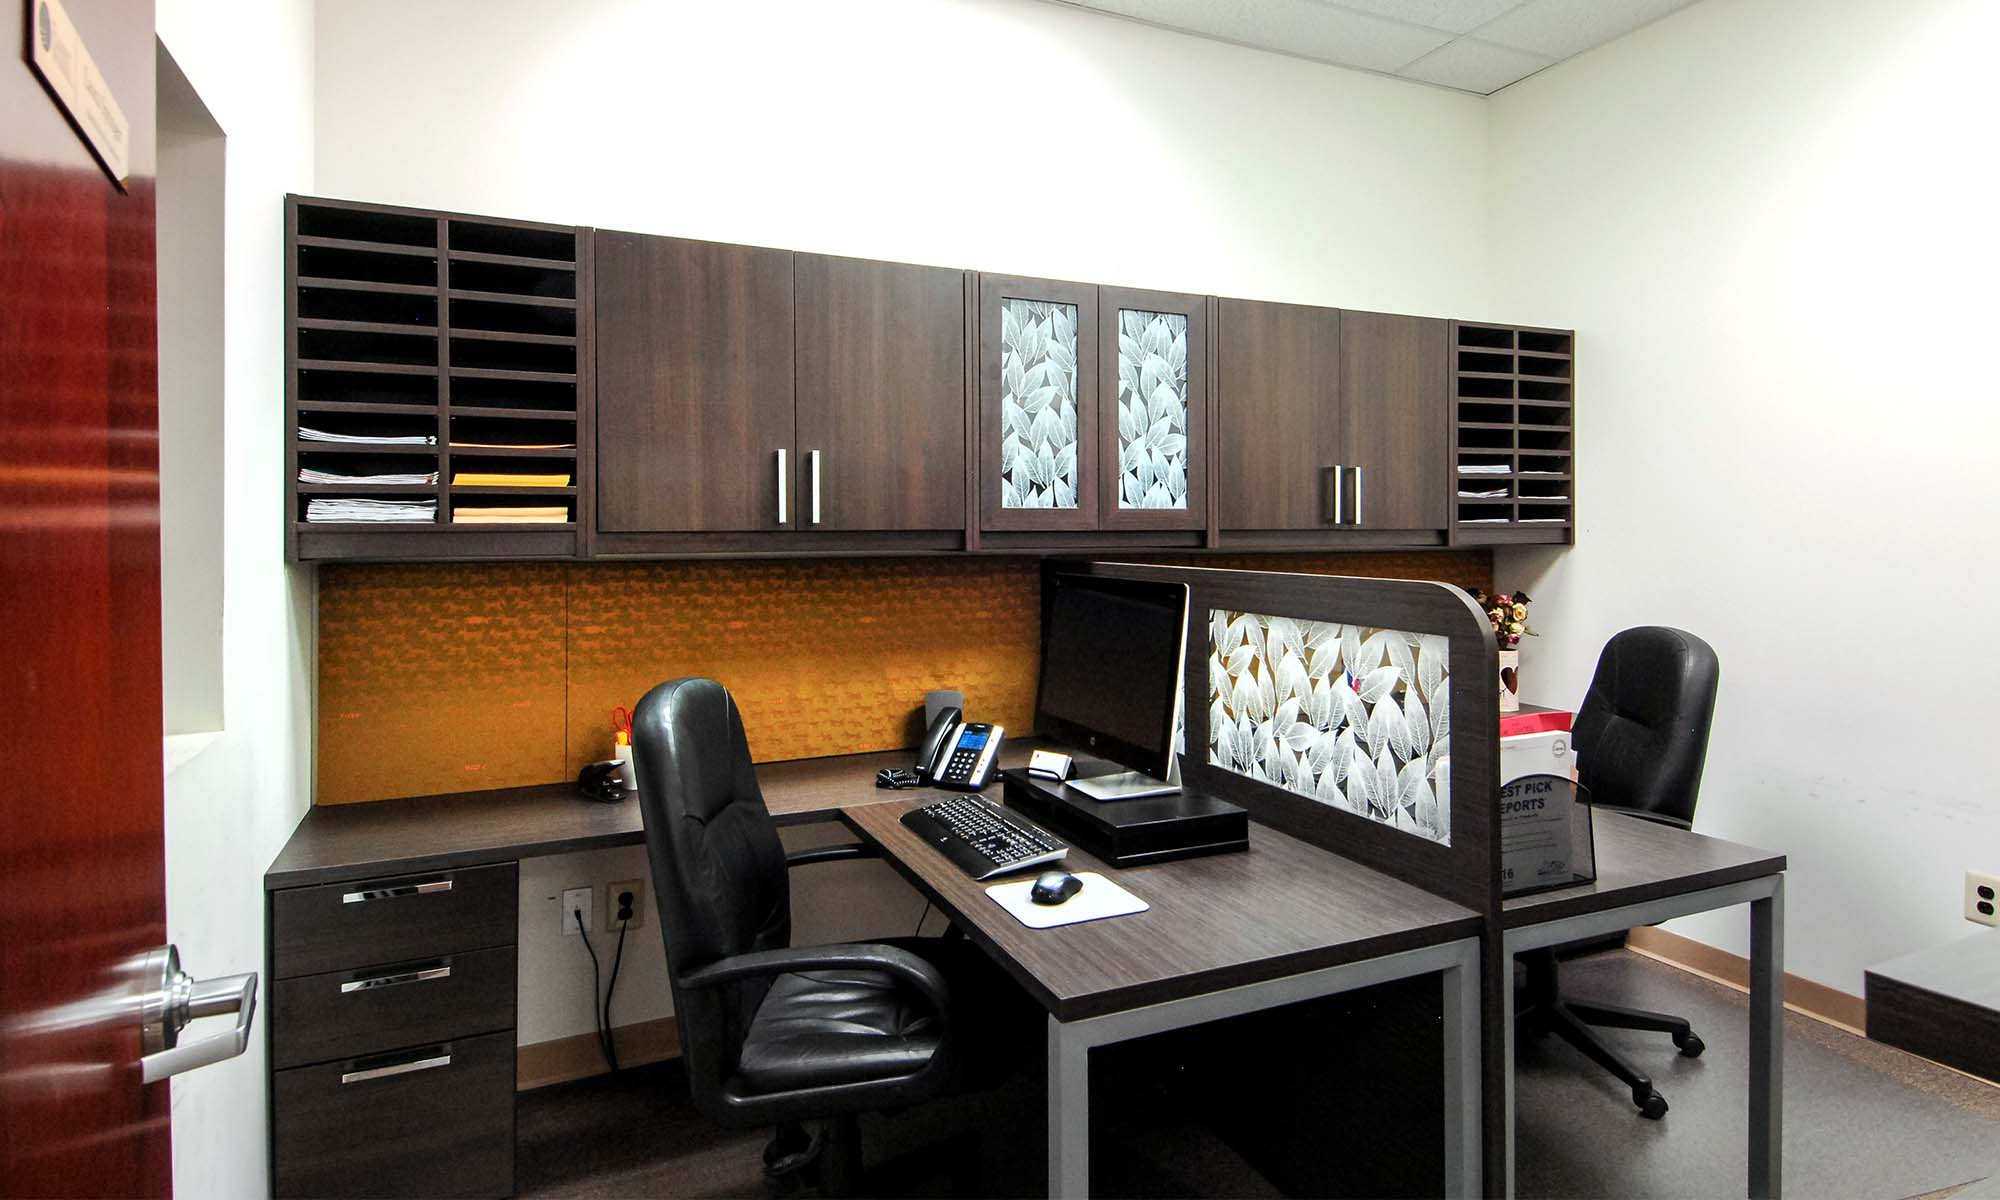 Commercial Offices and Design Ideas